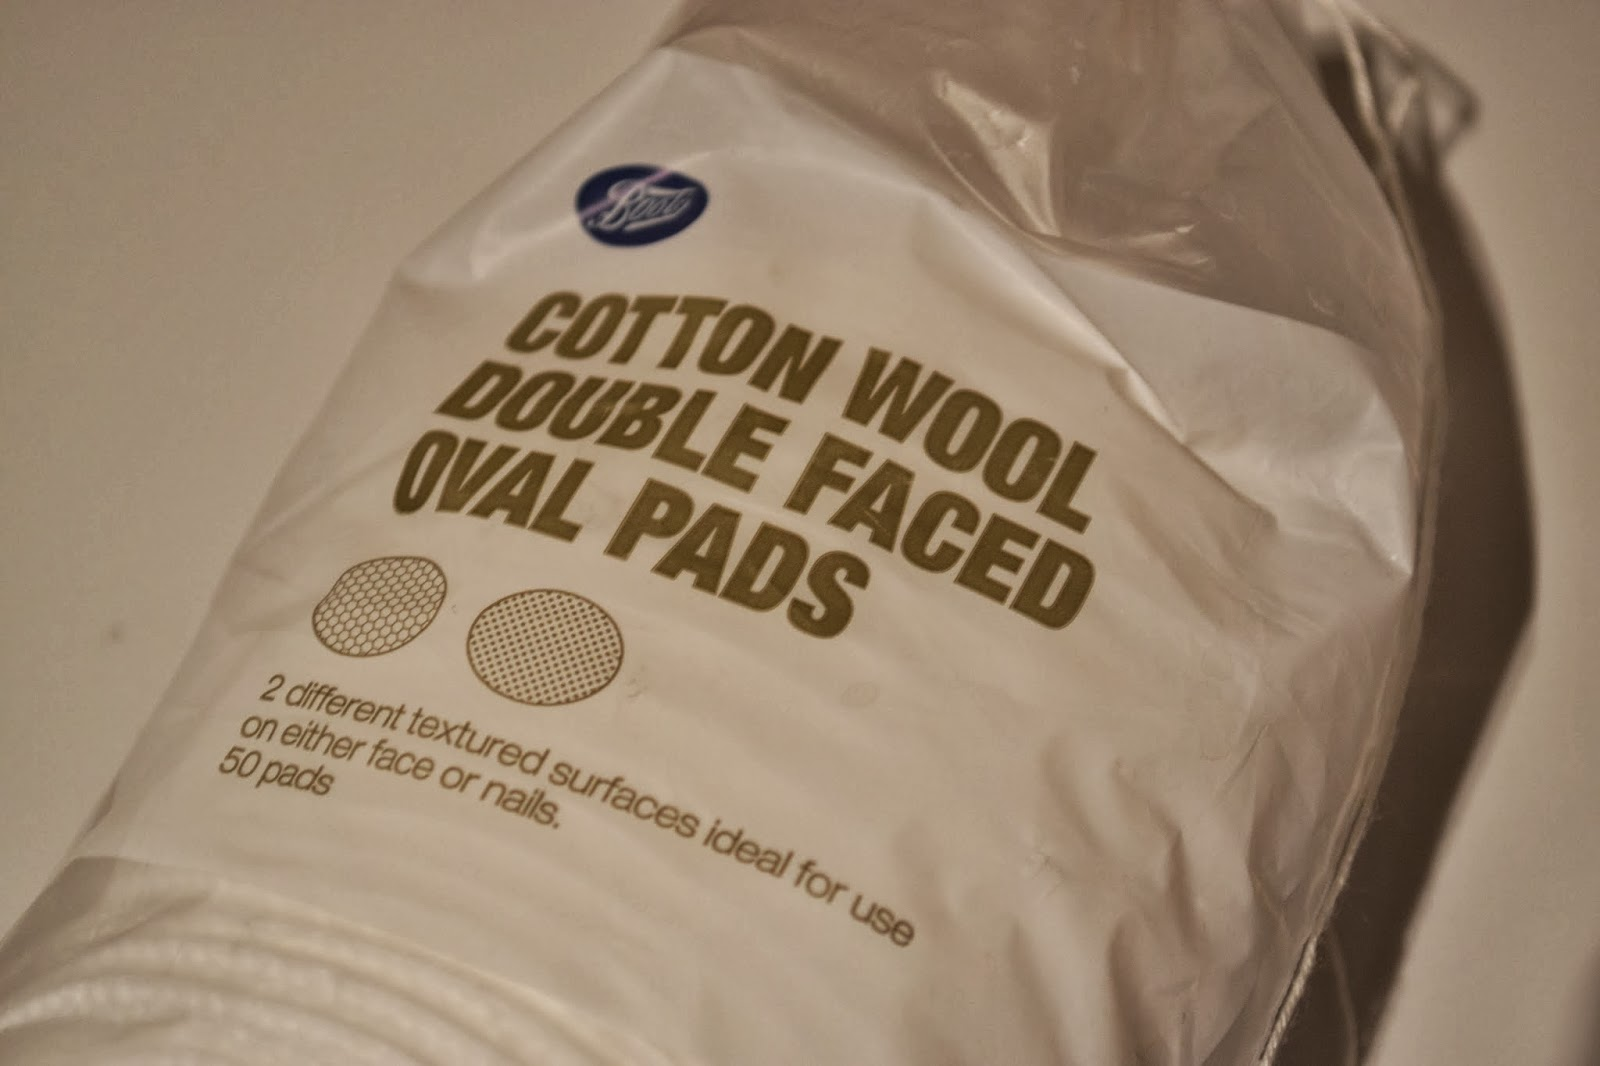 the best cotton wool pads